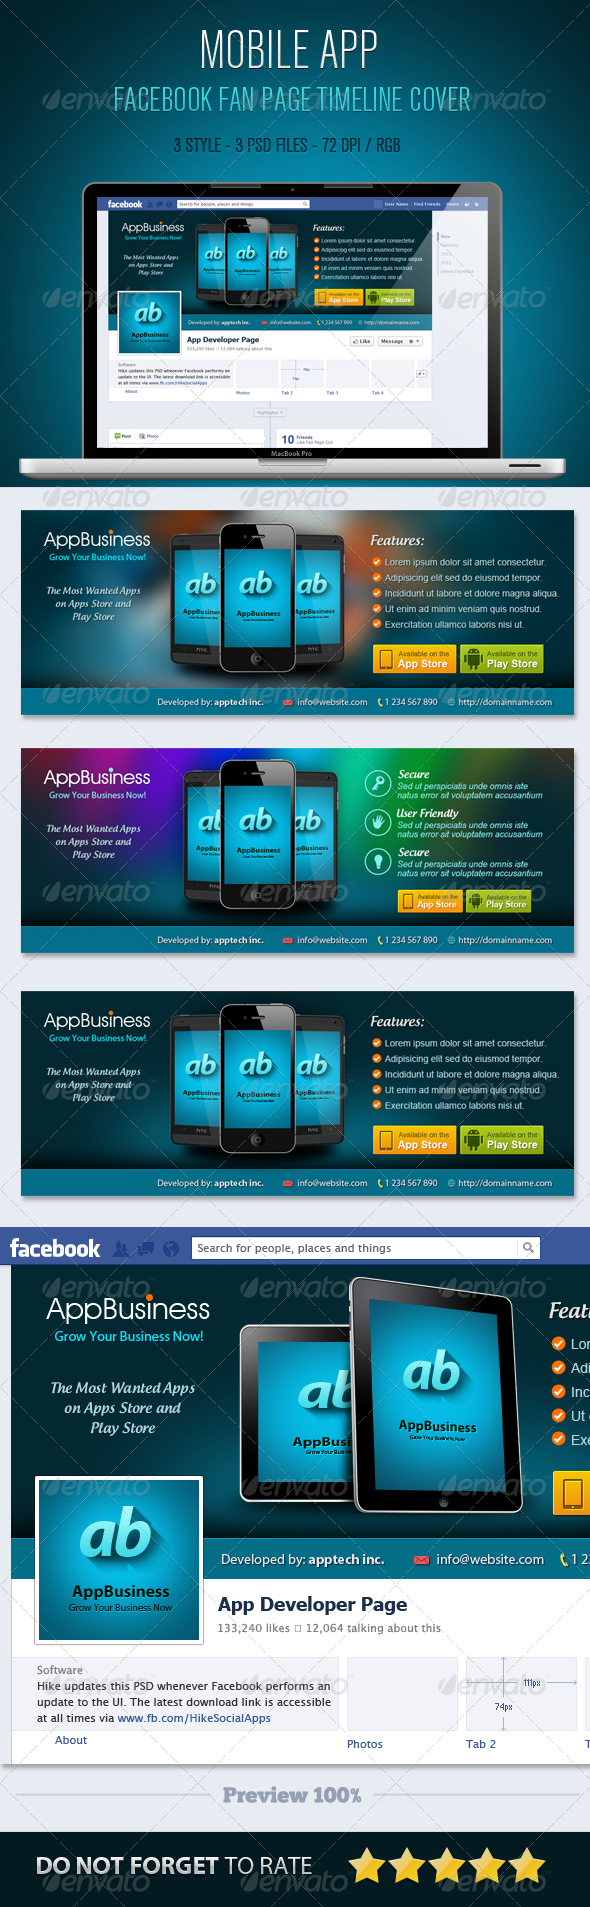 GraphicRiver Mobile App Facebook Timeline Cover 5511400